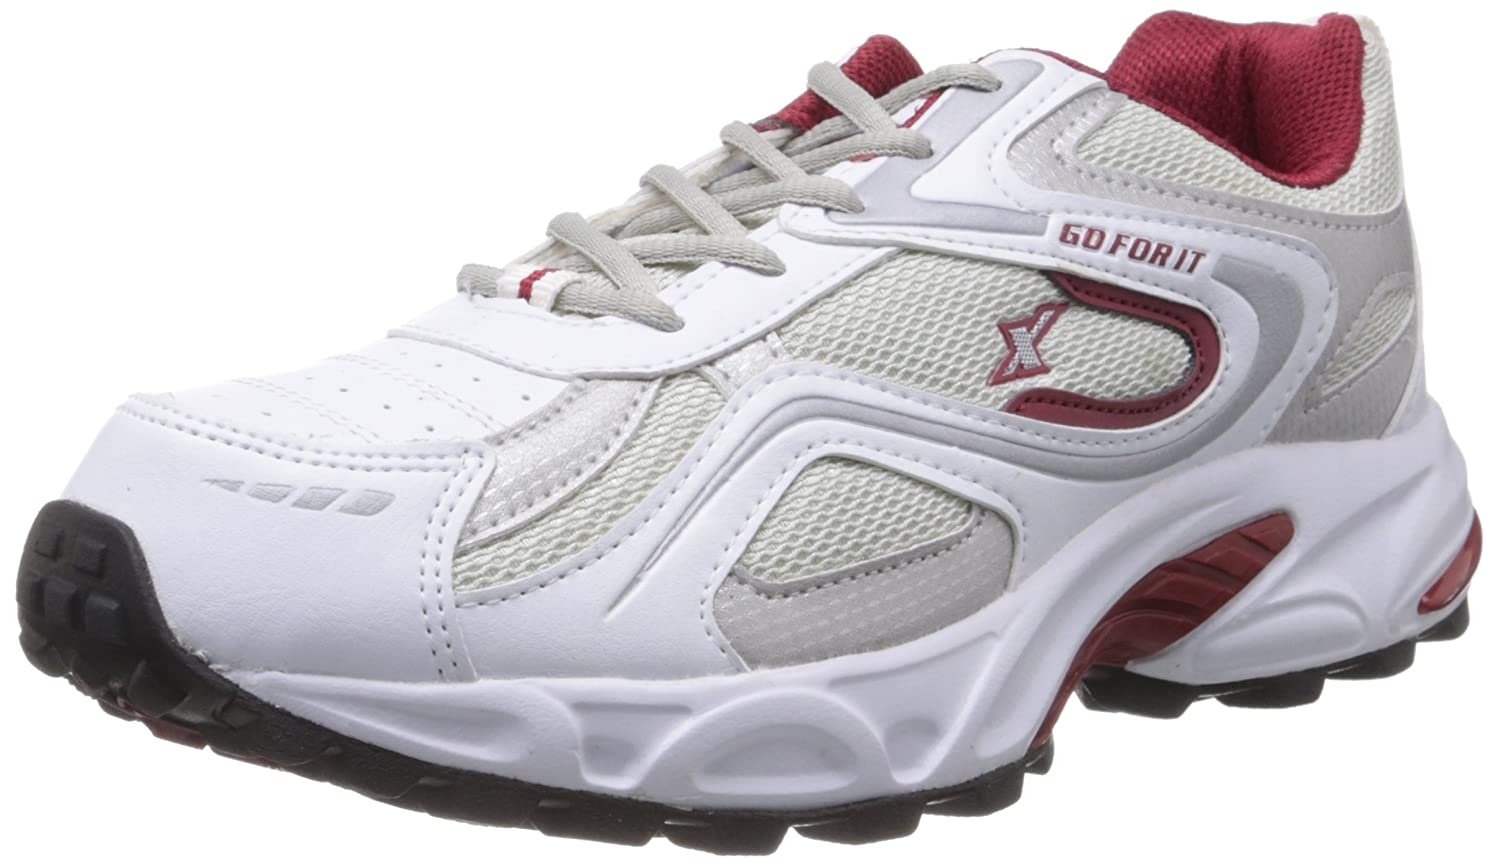 Sparx white running shoes for men